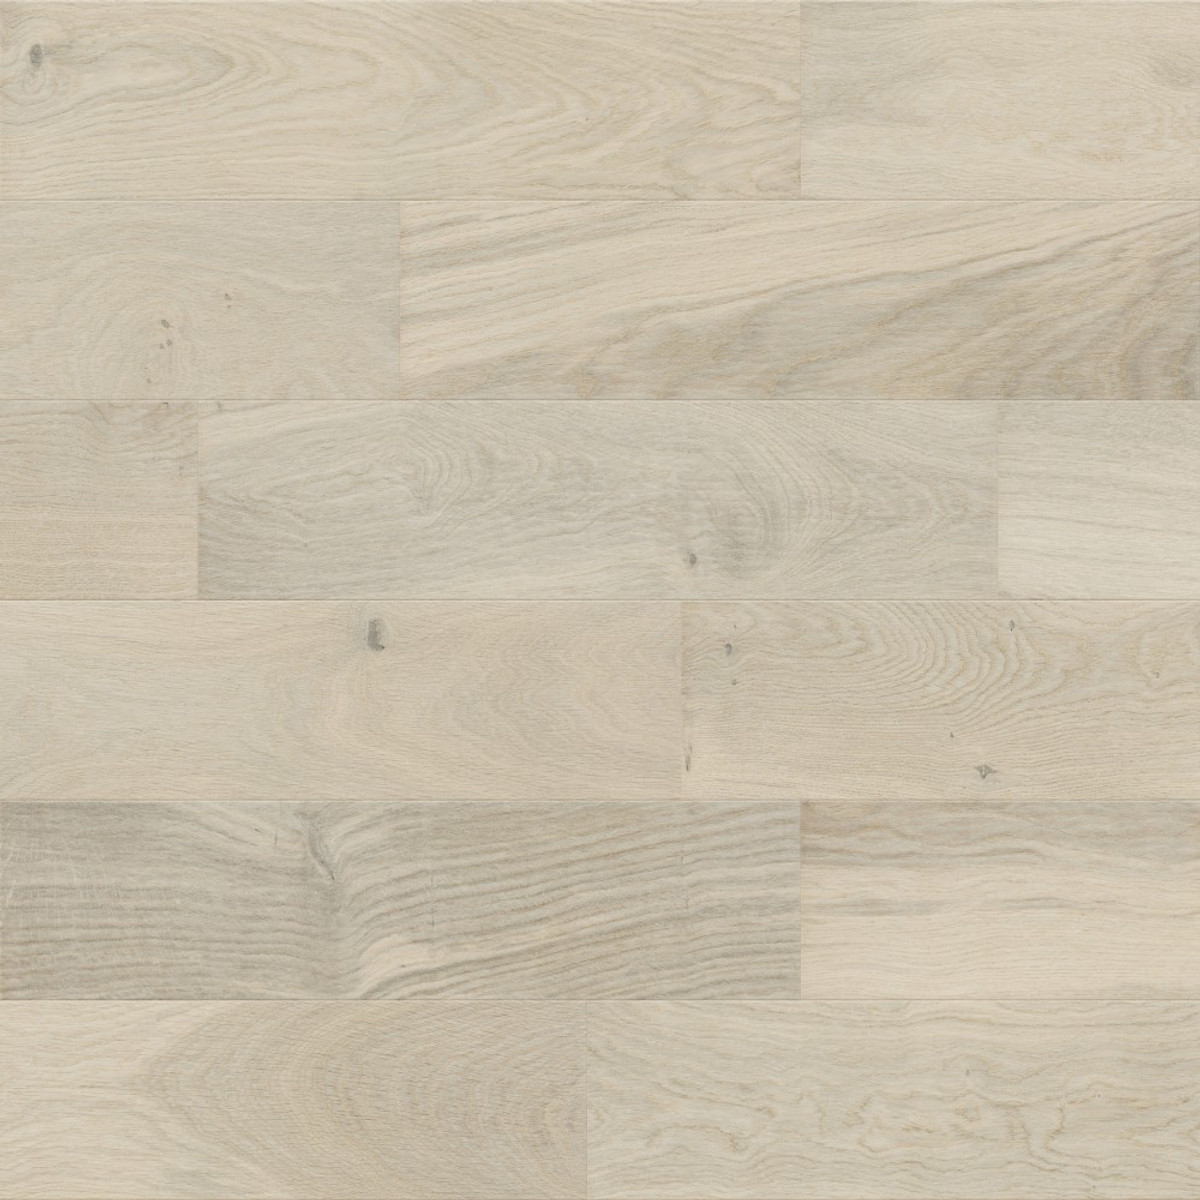 Tuscany Xpress Click Various Cream Engineered Wood Flooring ( Per 2.26m2 Pack ) www.tuscanytiles.co.uk